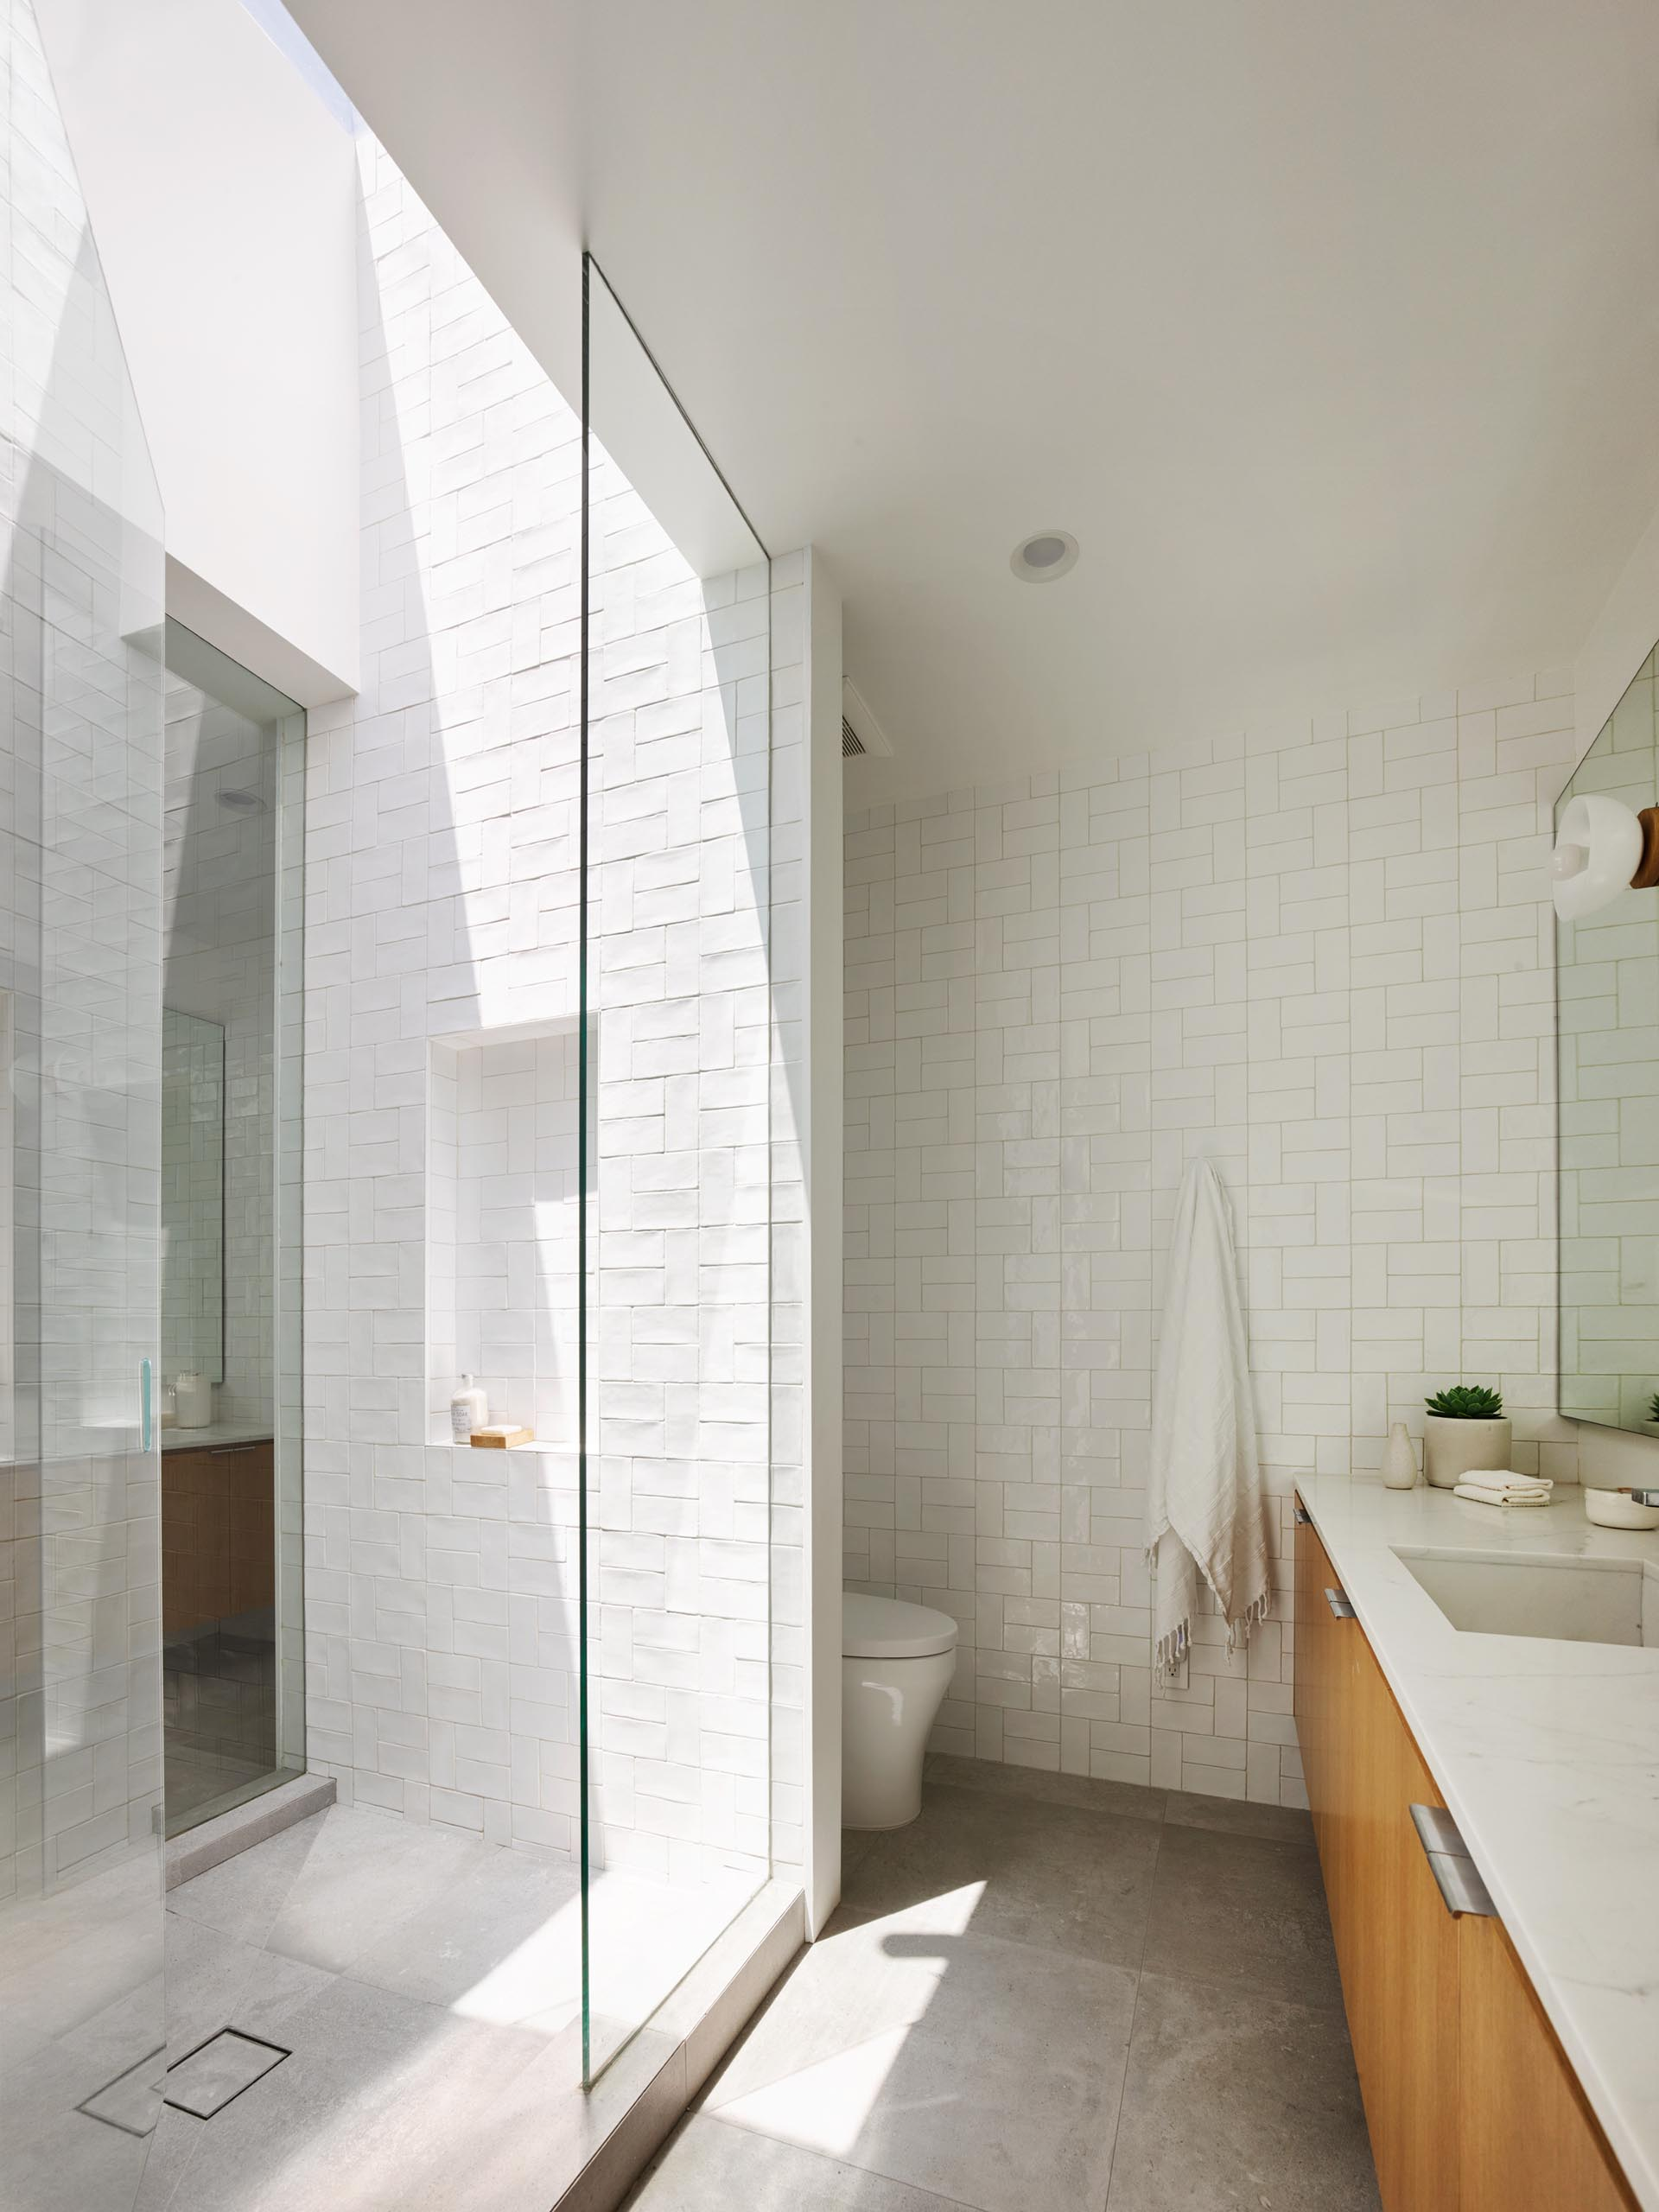 A modern bathroom with a walk-in shower with white tiles and a skylight, that adds plenty of natural light.